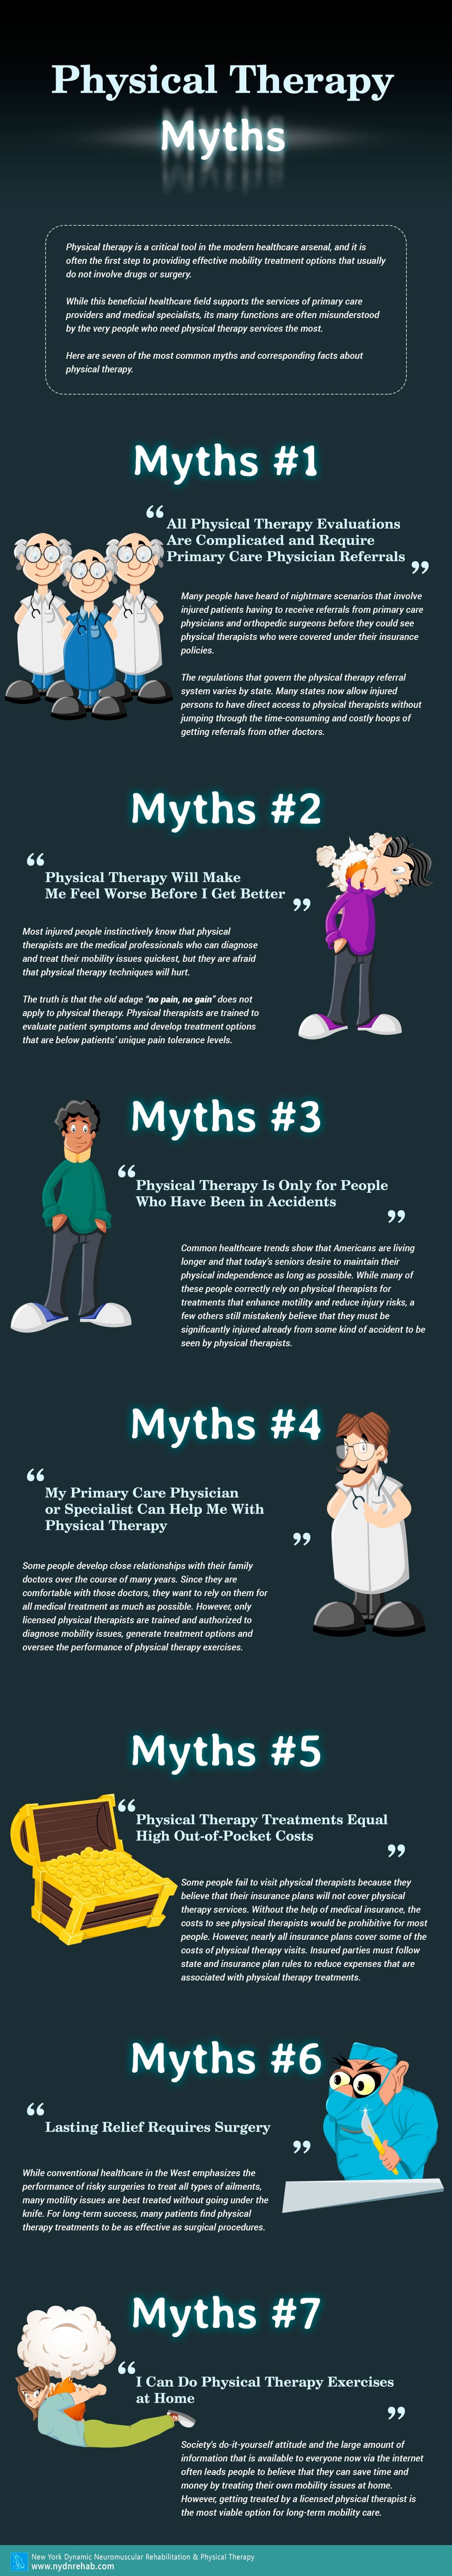 Physical Therapy Myths Uncategorized